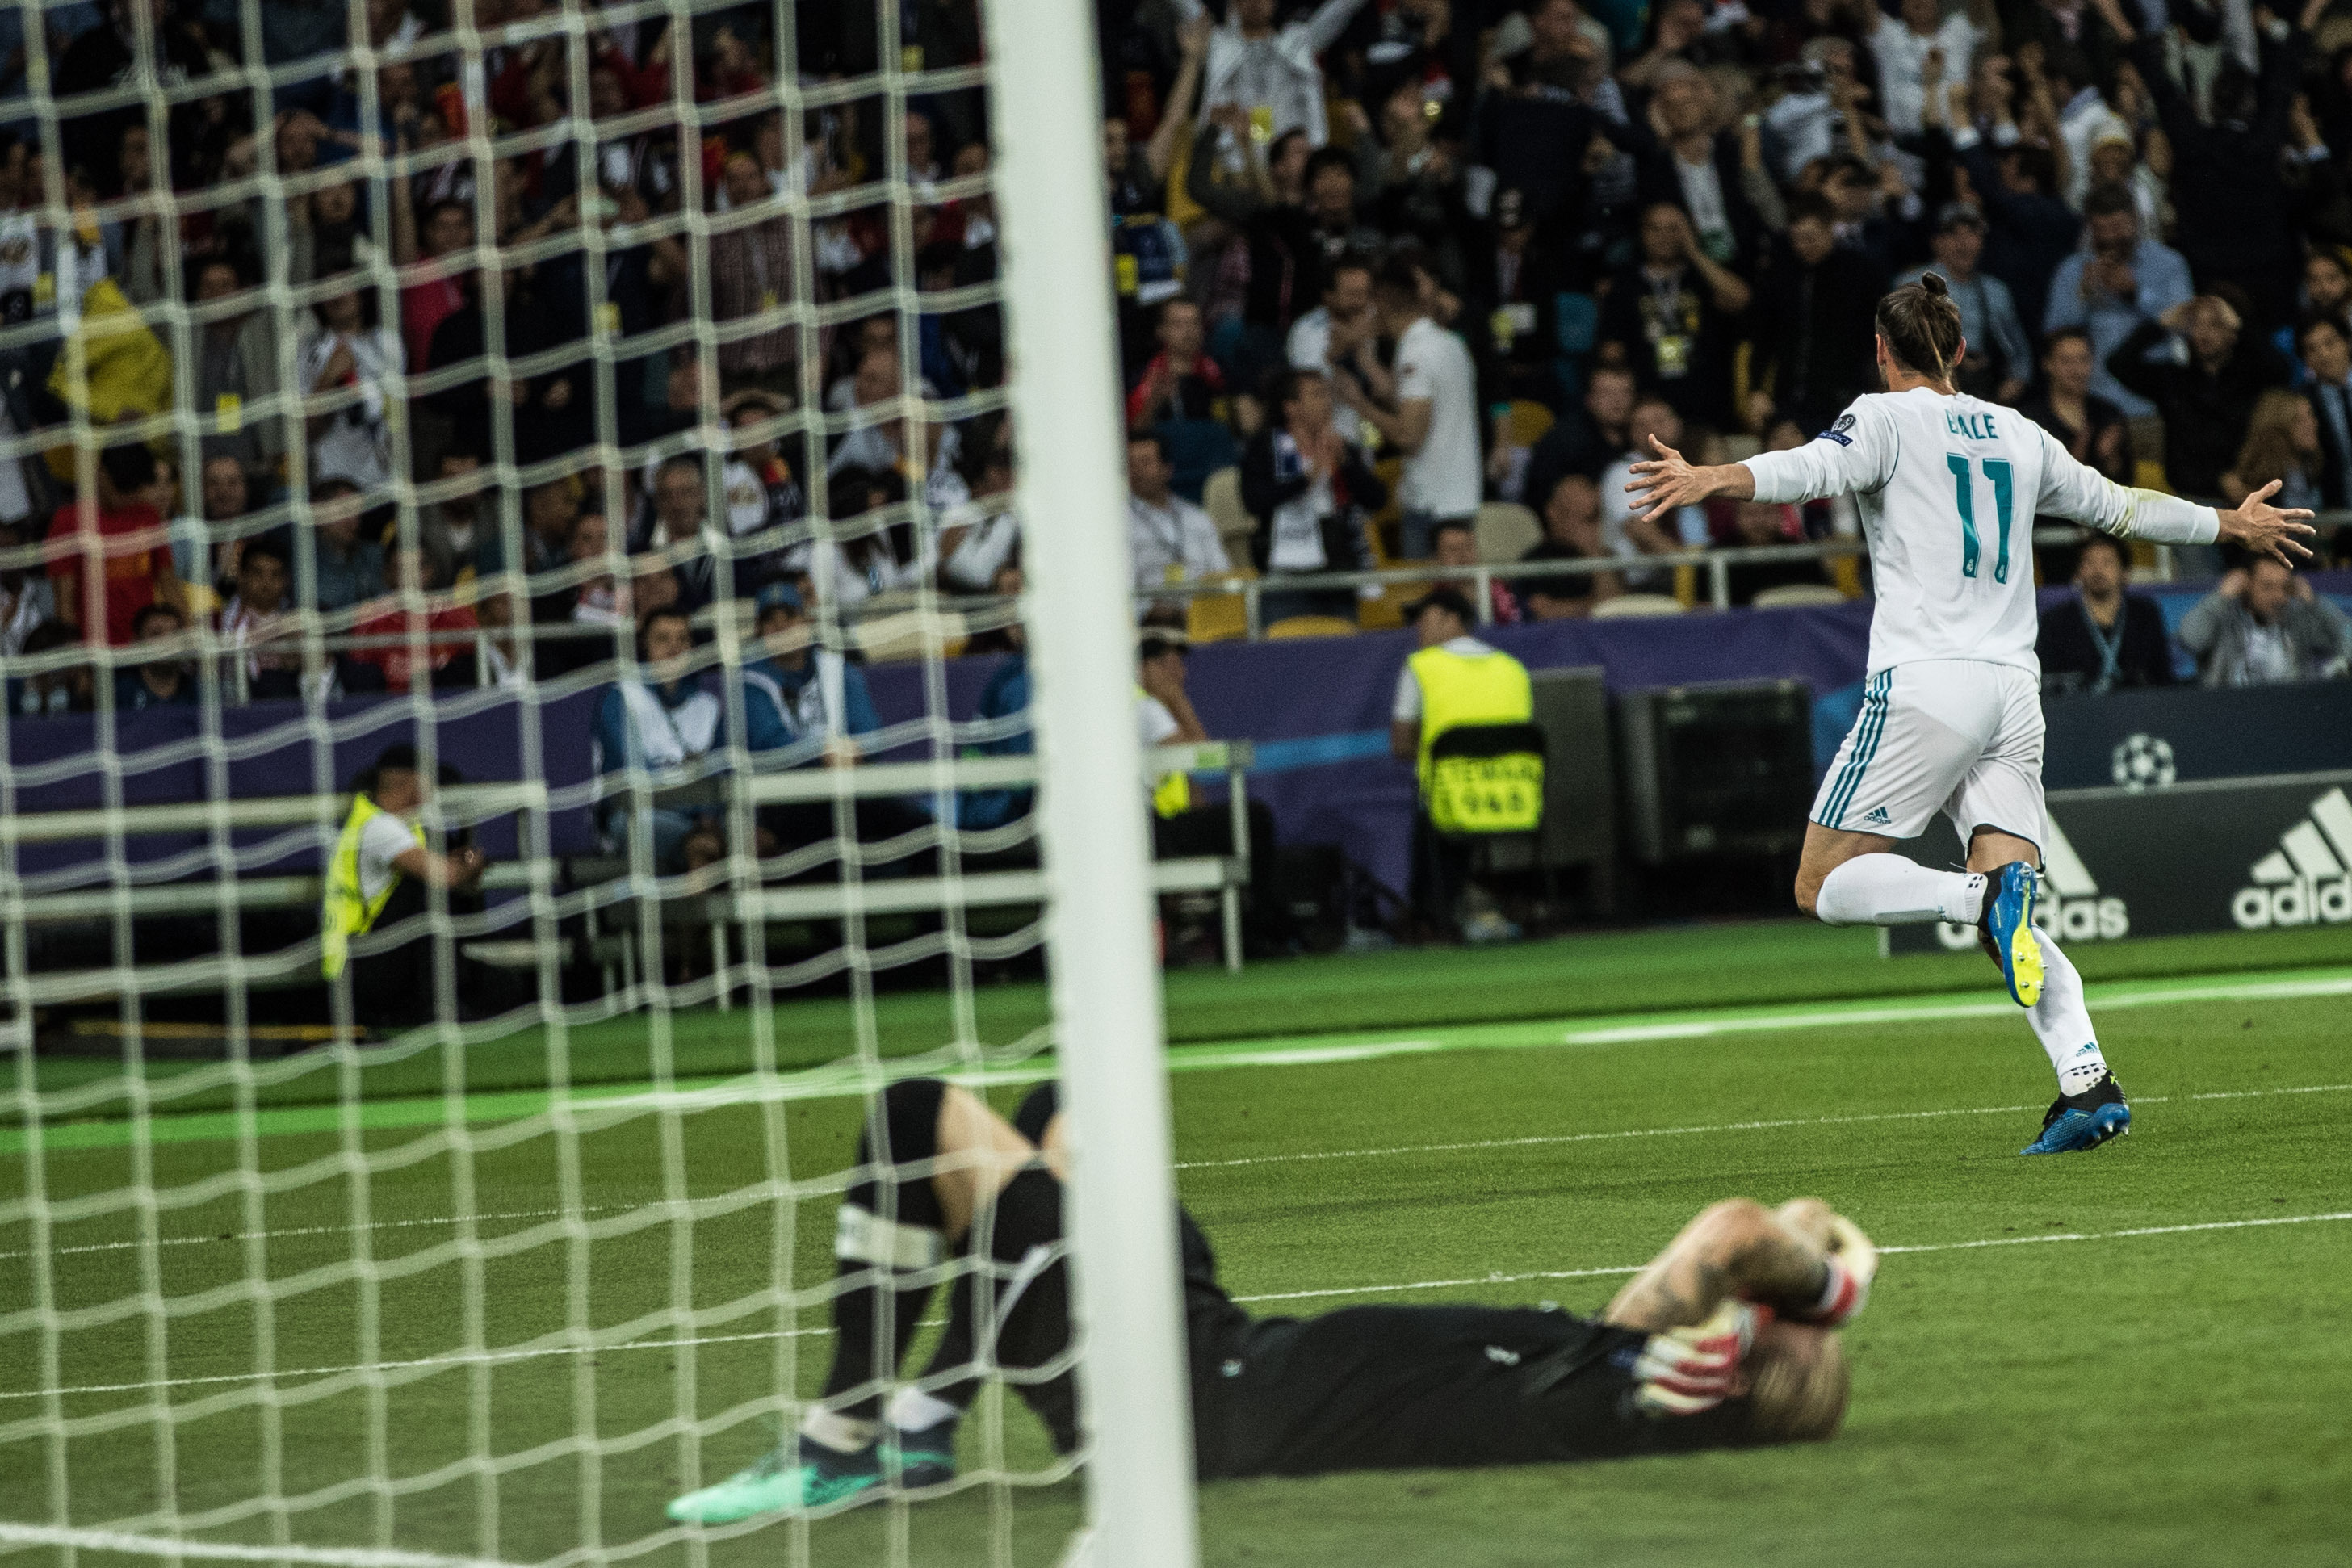 Bale, Karius send Twitter into overdrive in action-packed Champions League final